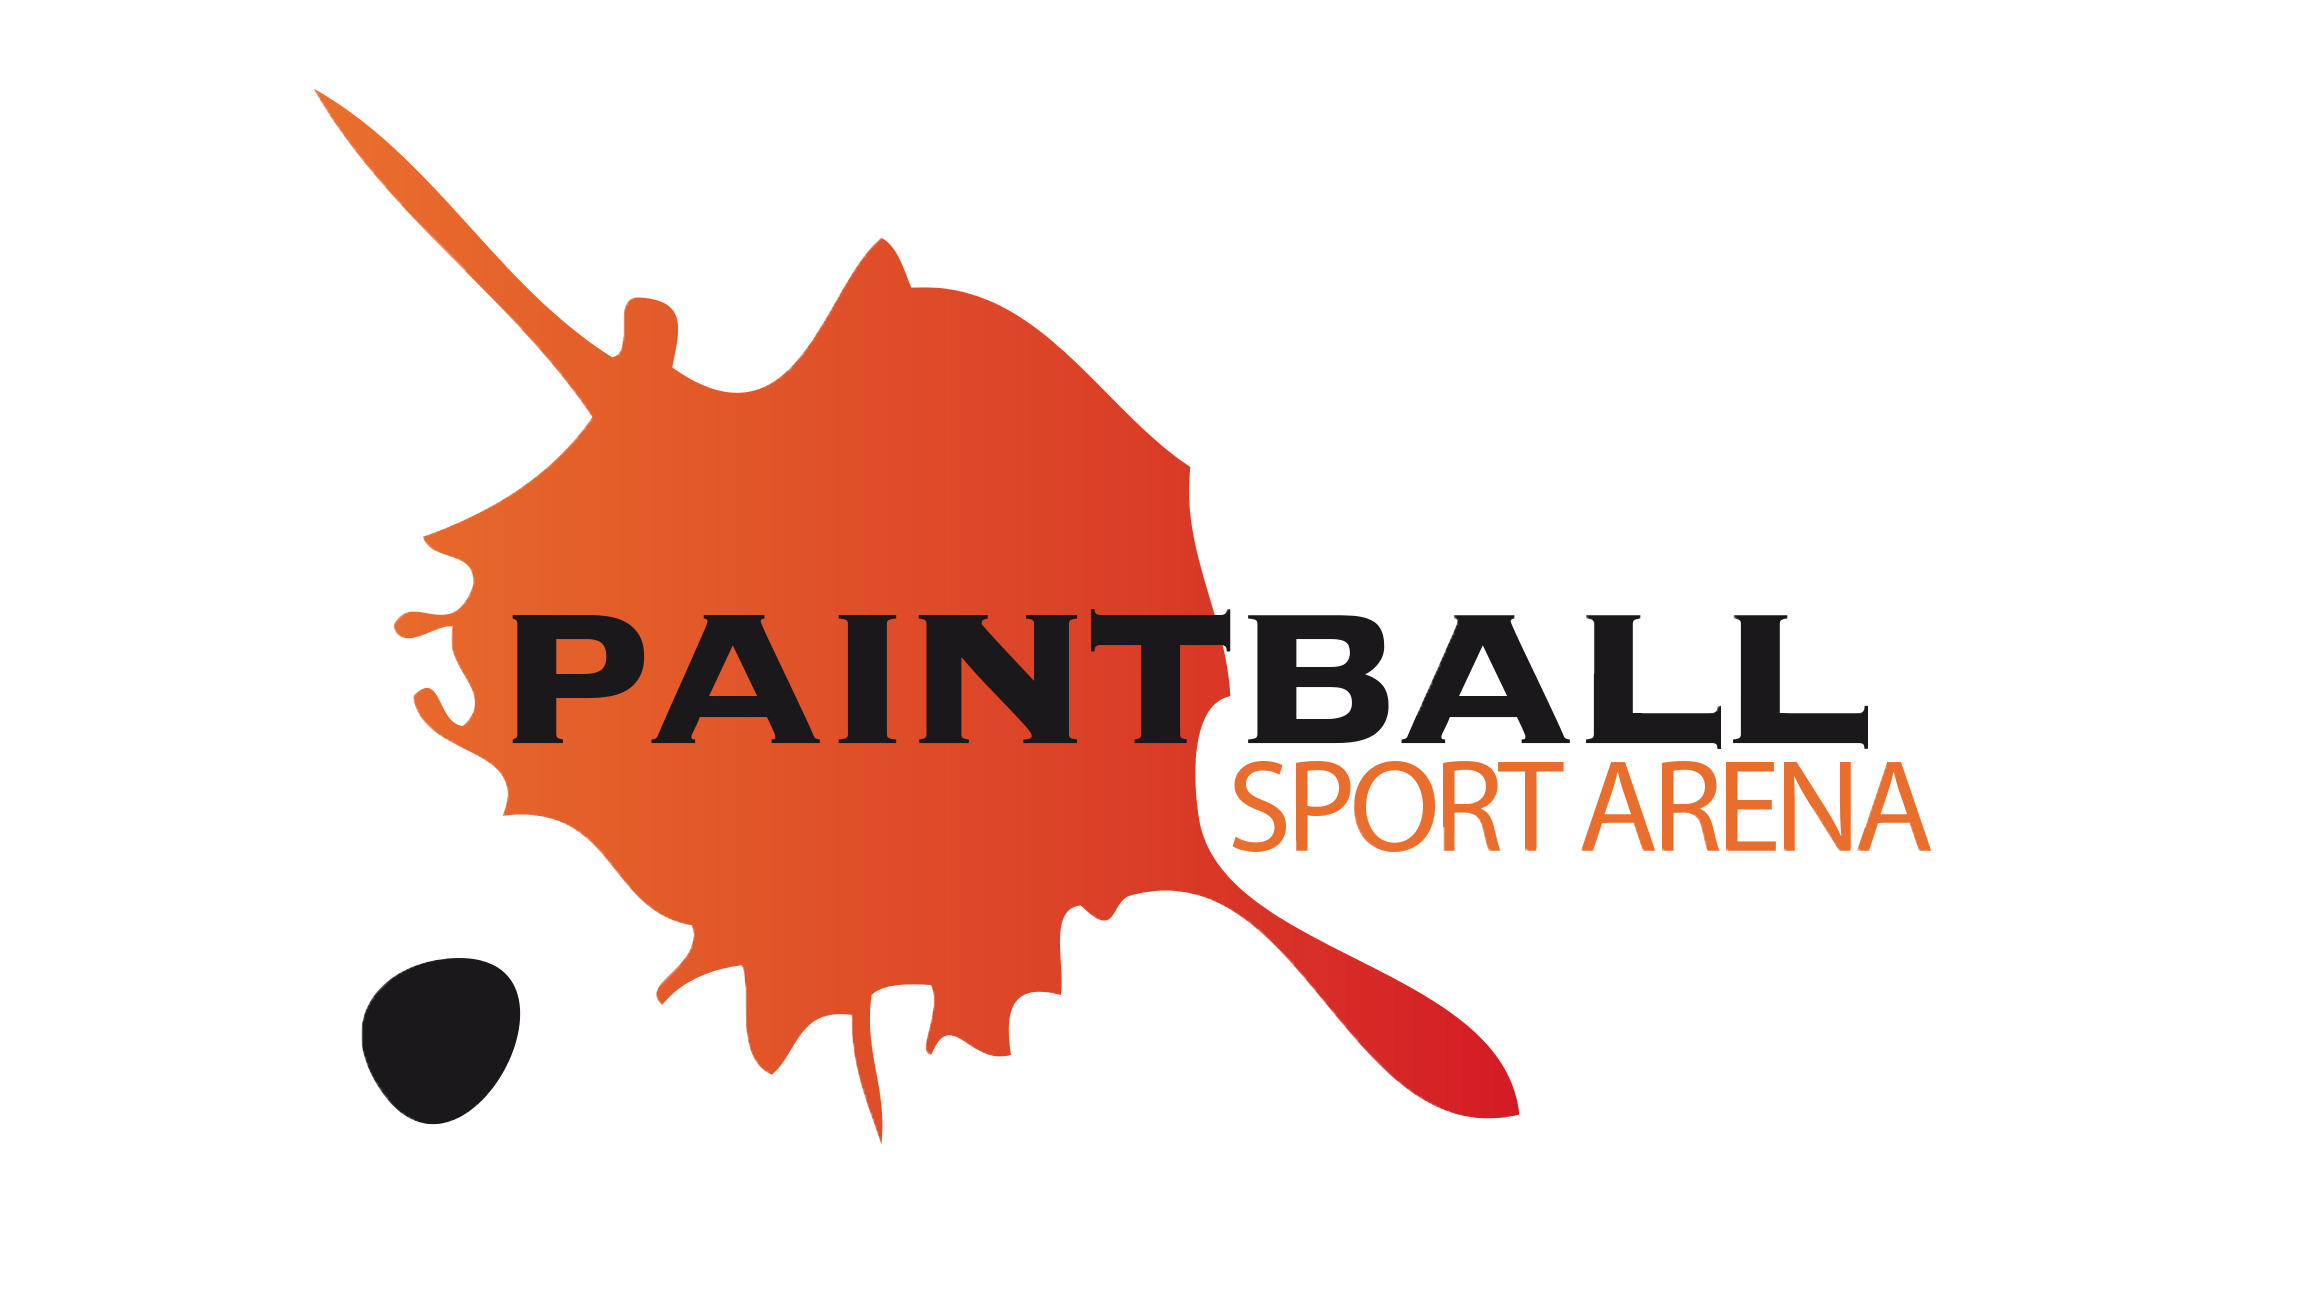 Paintball Sport Arena